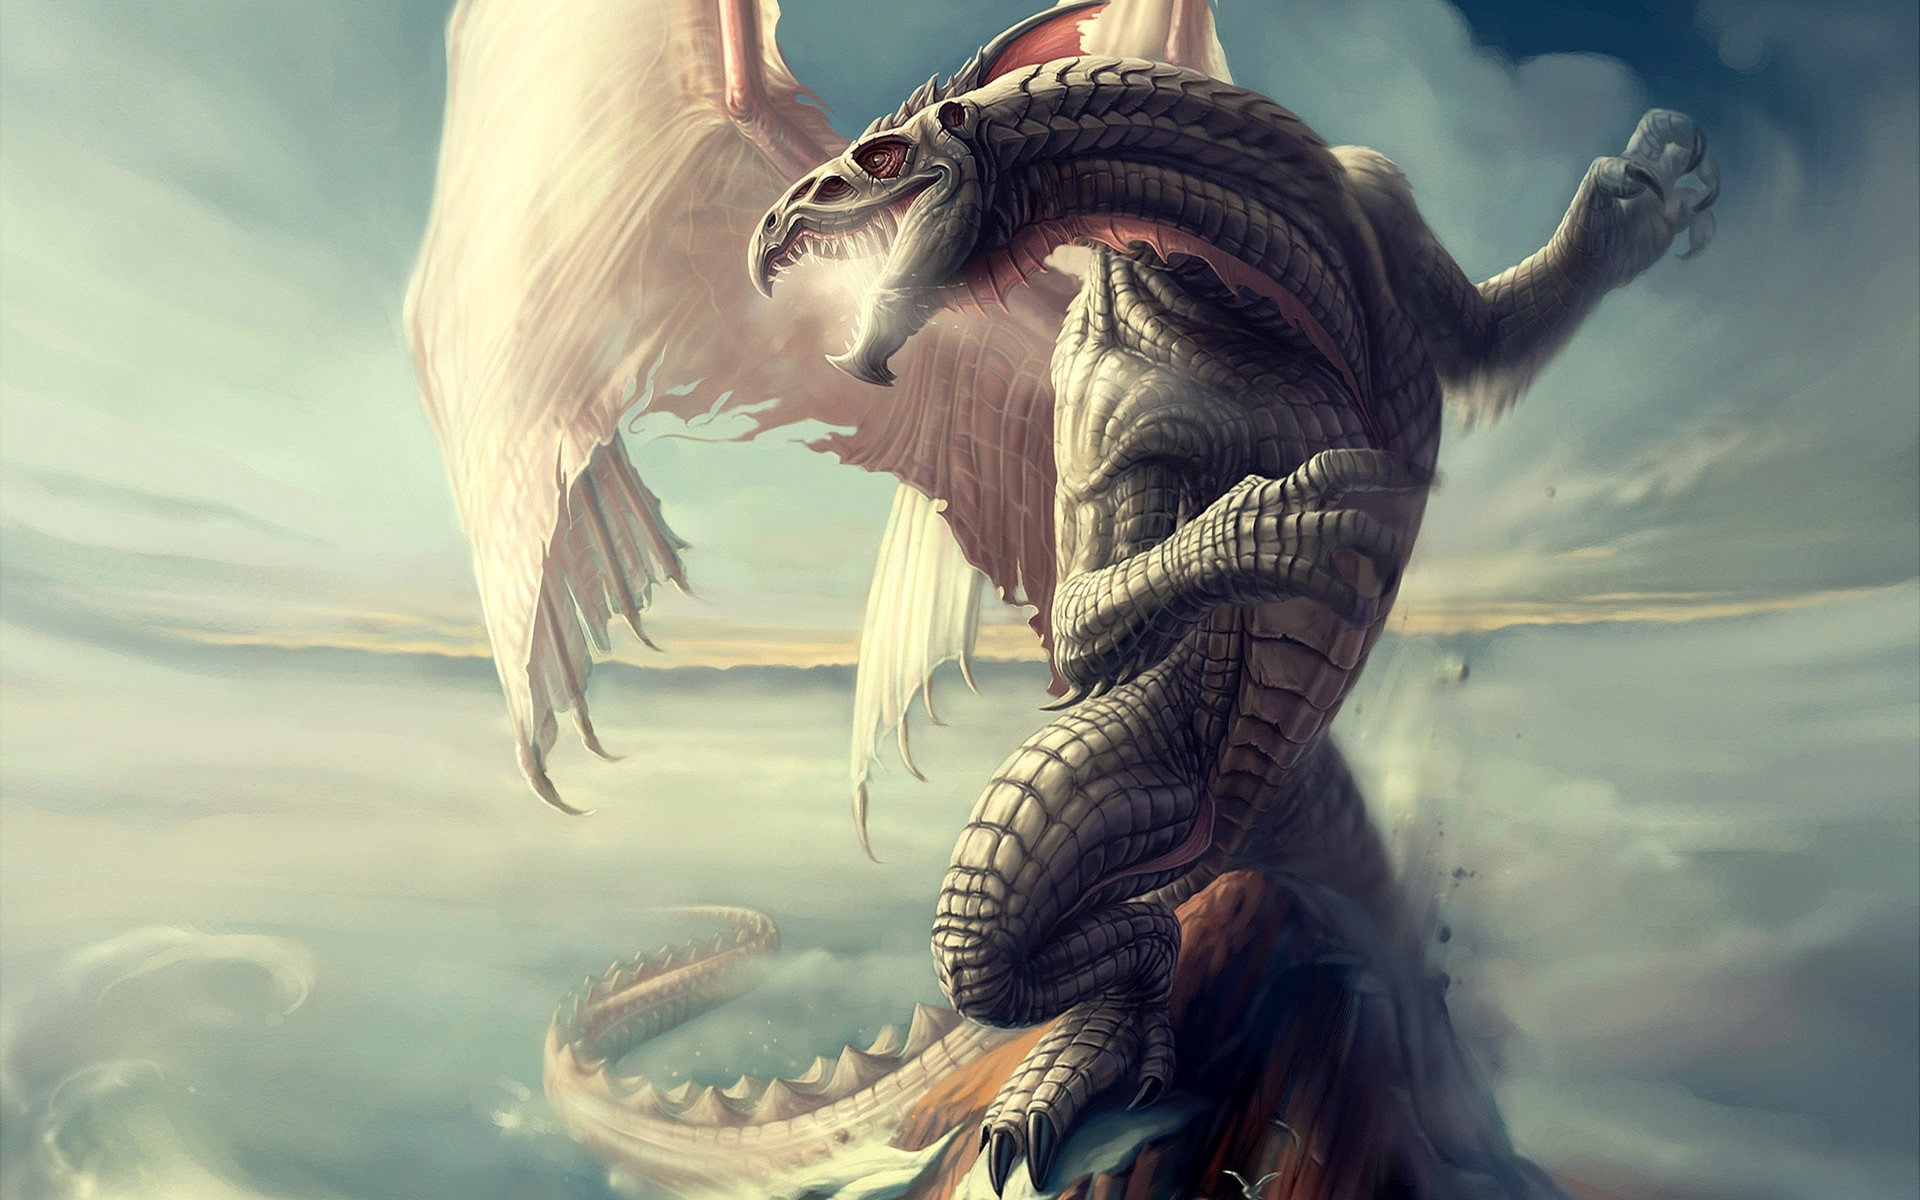 Res: 1920x1200, Epic Dragon HD Wallpaper. 3D Wallpapers